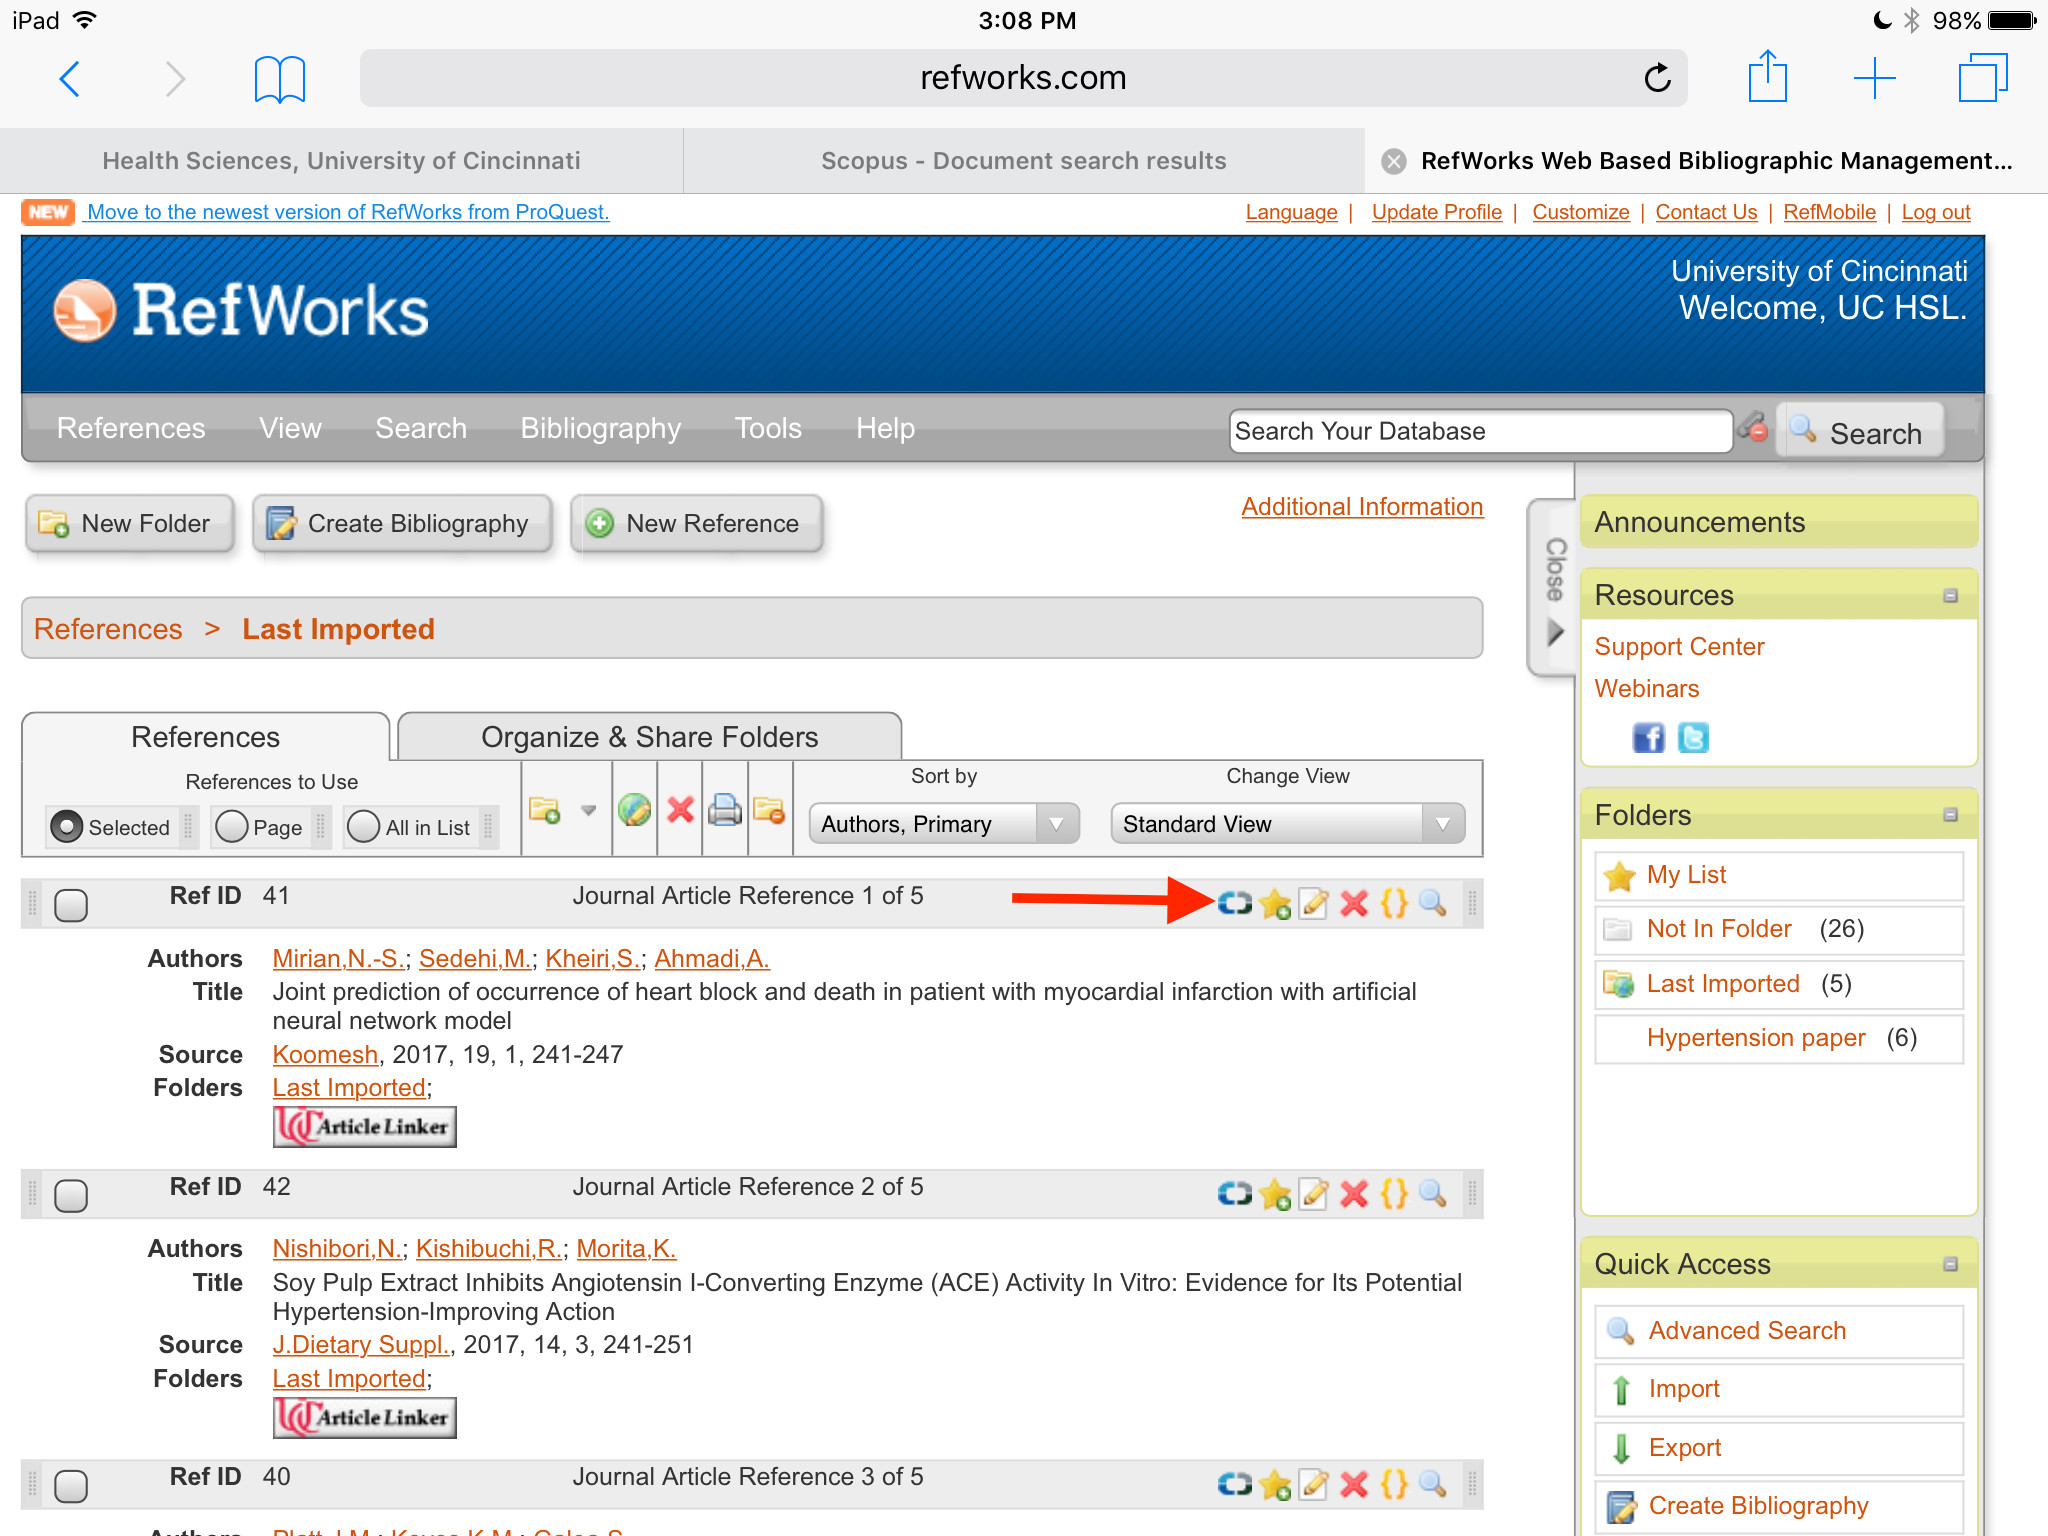 Screengrab of RefWorks references list with link to Scopus reference in toolbar highlighted